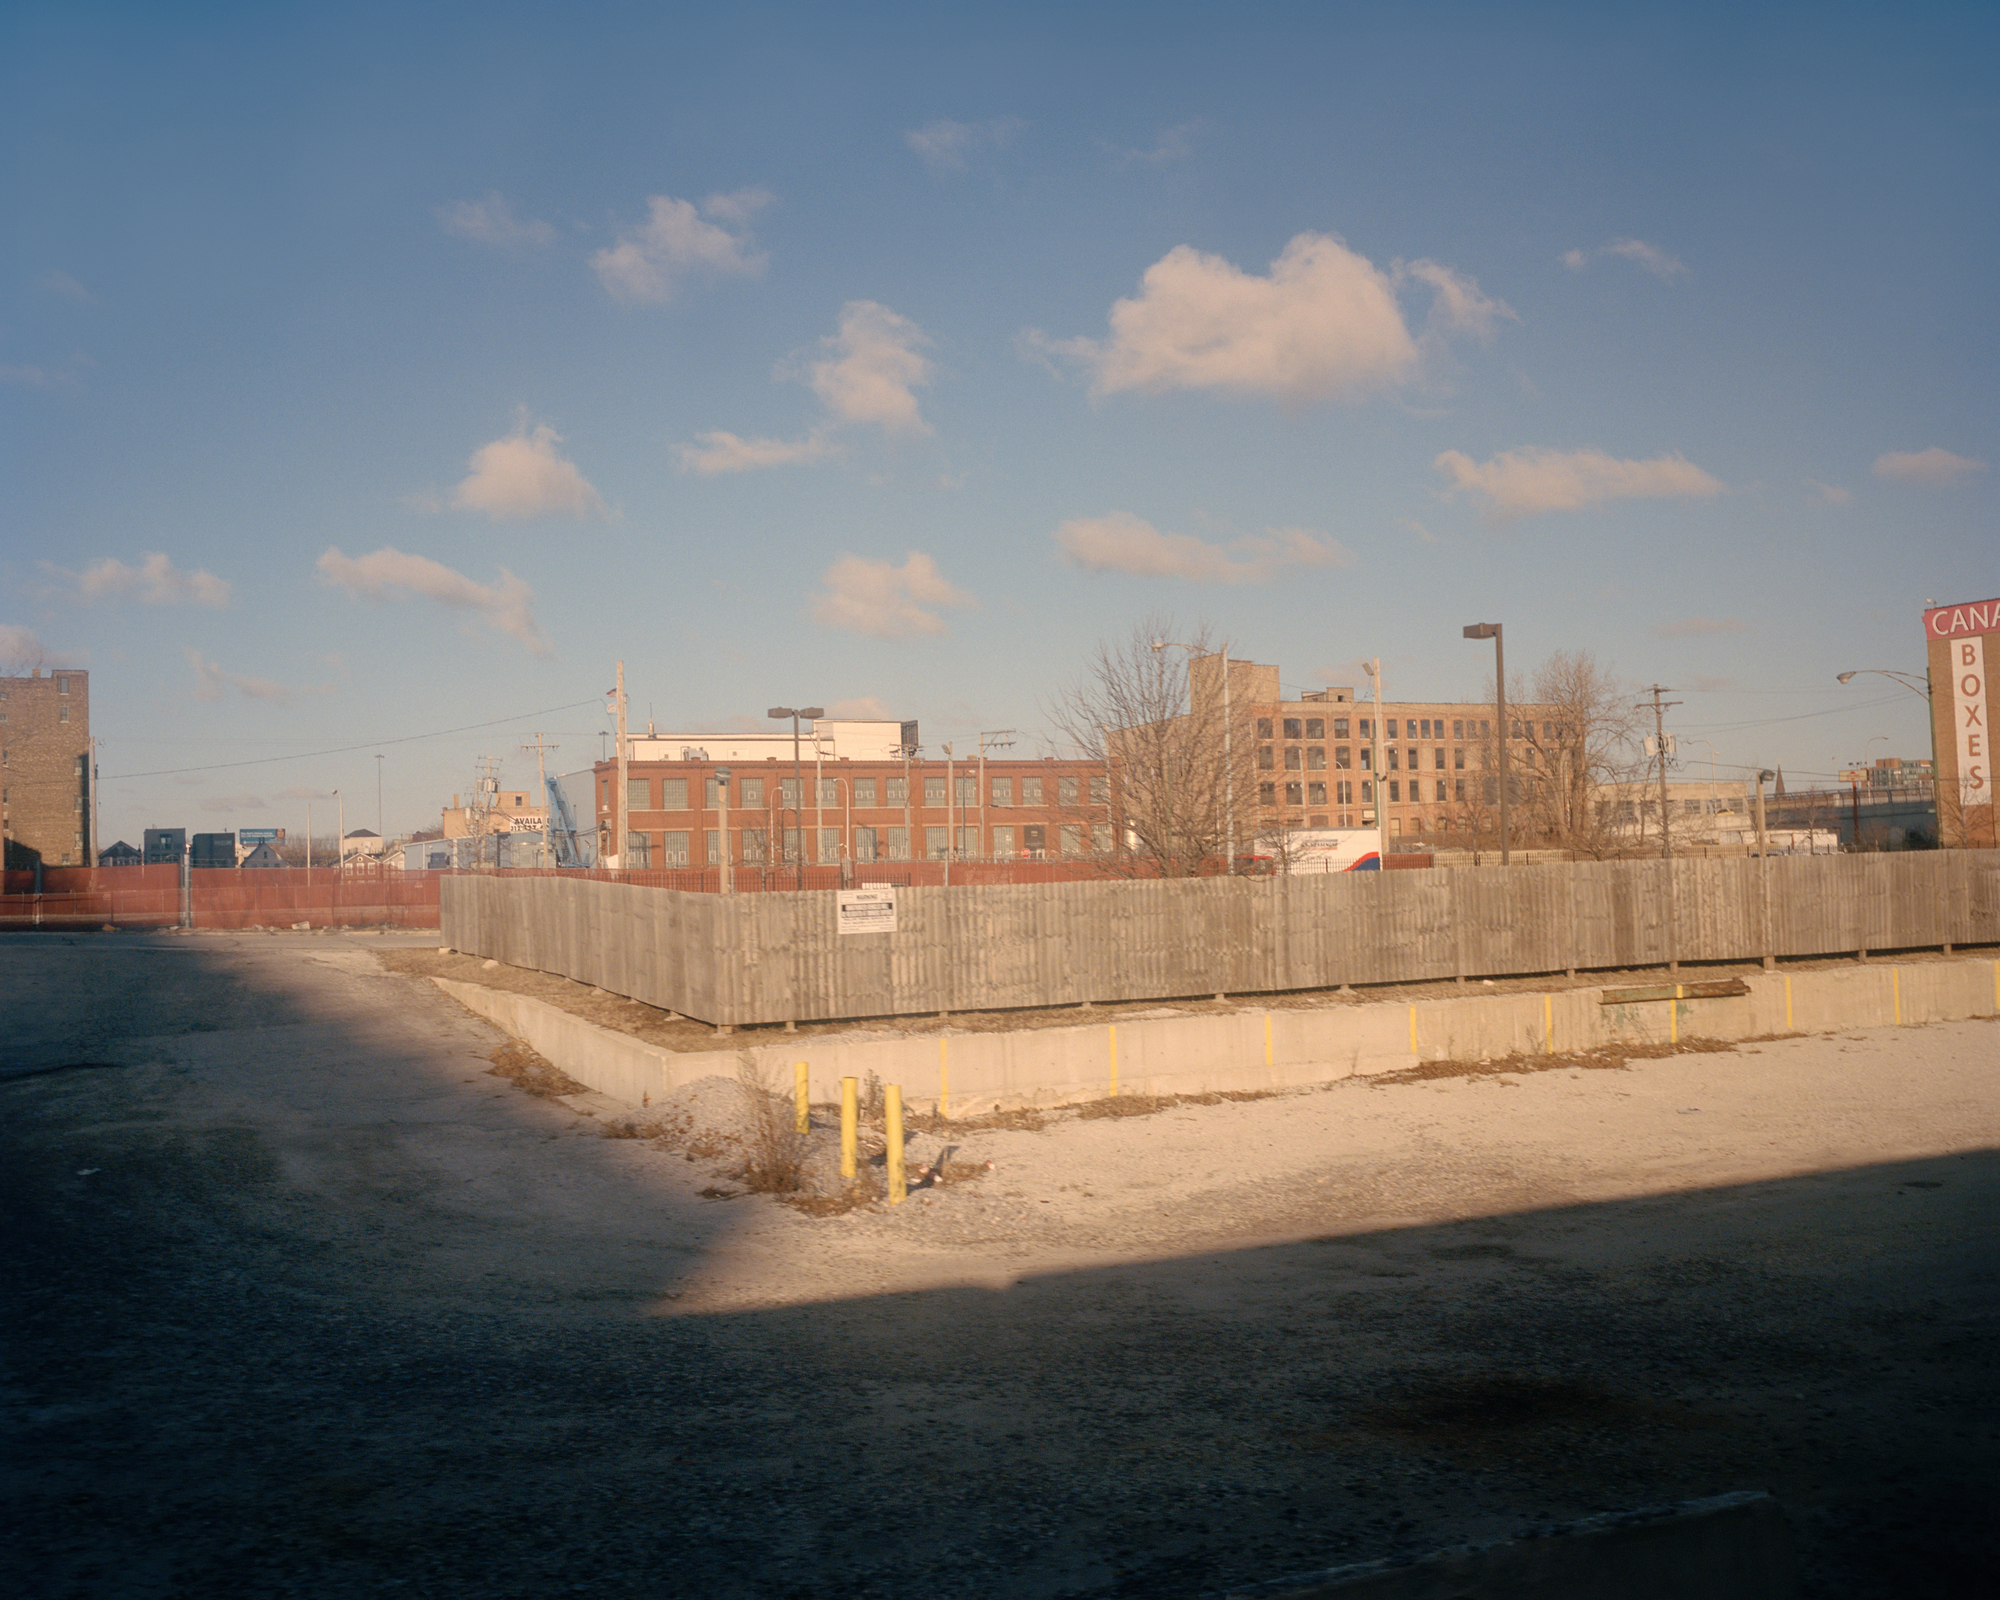 McNAIR EVANS  Capital Limited 07009,  2012 Archival Pigment Print  Available sizes 40 x 50 in, edition of 3 + 1AP 32 x 40 in, edition of 5 + 1AP 20 x 25 in, edition of 5 + 1AP